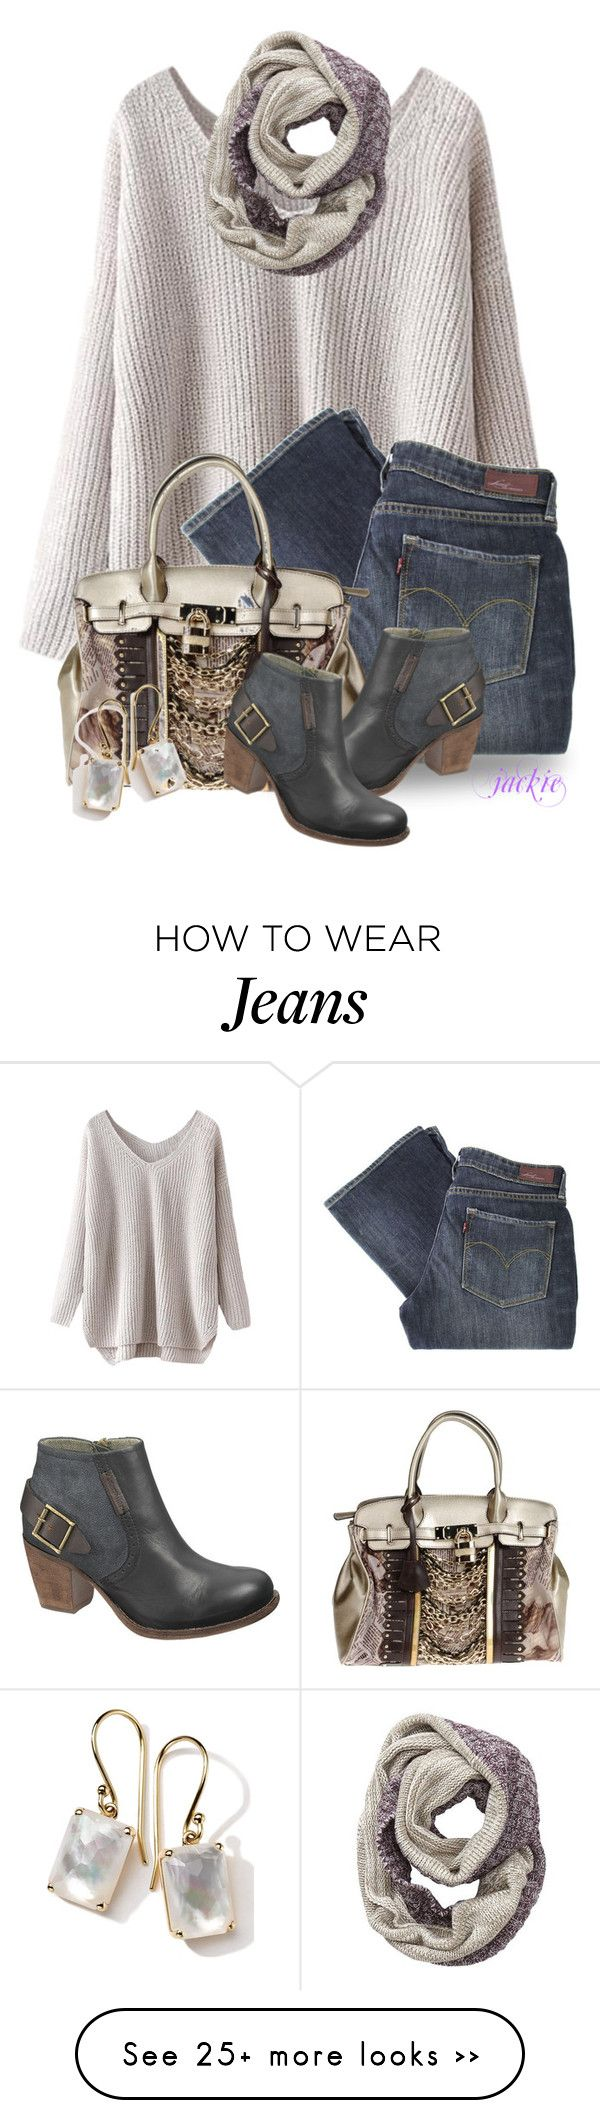 """Buckles on My Boots"" by jackie22 on Polyvore featuring Levi's, You&Me, Athleta, Ippolita, Caterpillar, ankleboots, buckles, Levis, fallstyle and vnecksweater"